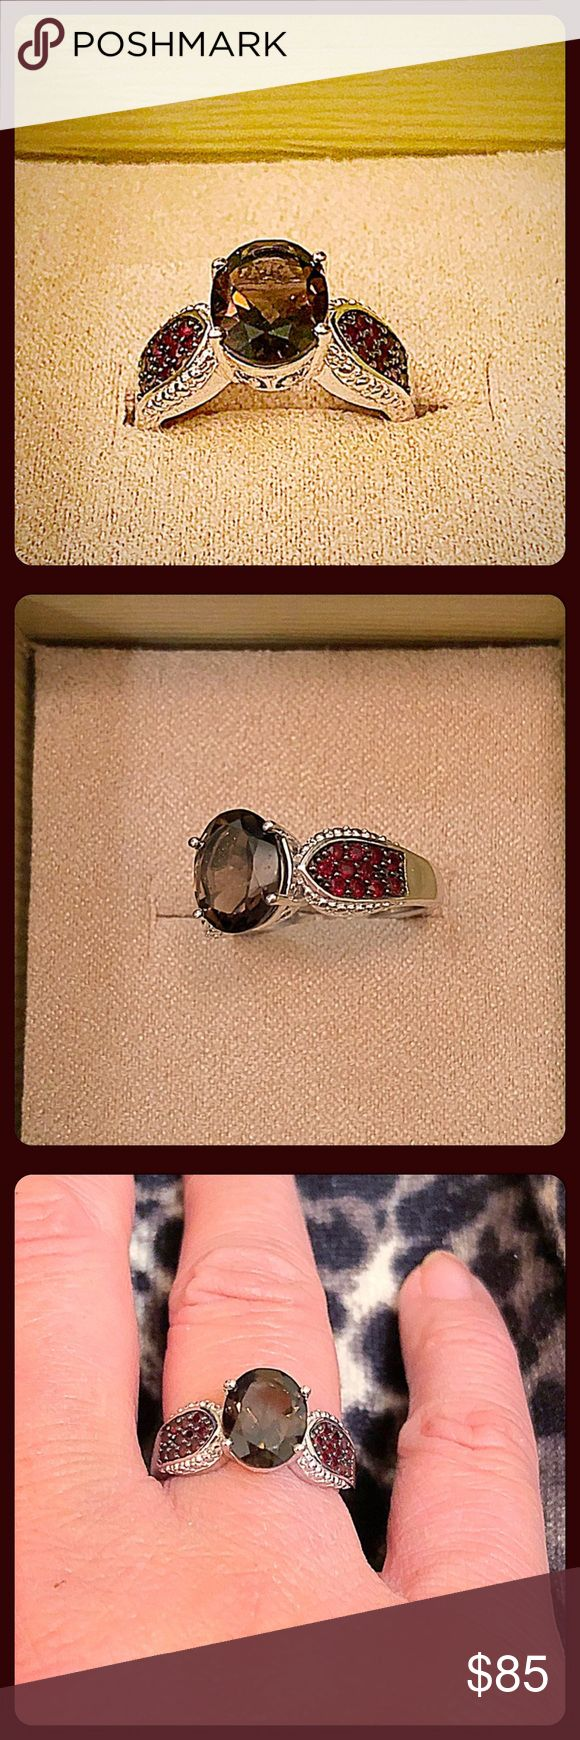 ✨Gorgeous .925 SS Smoky Quartz & Garnet Ring✨ This is a really pretty ring in person. The center prong set stone is a nice saturated smoky quartz which is 1.95ct. or an 8x10mm size stone. Each side has a total of about .35ct of round pave derp red garnet stones. Intricate carvings on the sides. The .925 sterling silver is rhodium overlayed to minimize tarnishing. 5g total wt. Great as a gift or for yourself😉 NWT Size 7. Thai Artisans Jewelry Rings